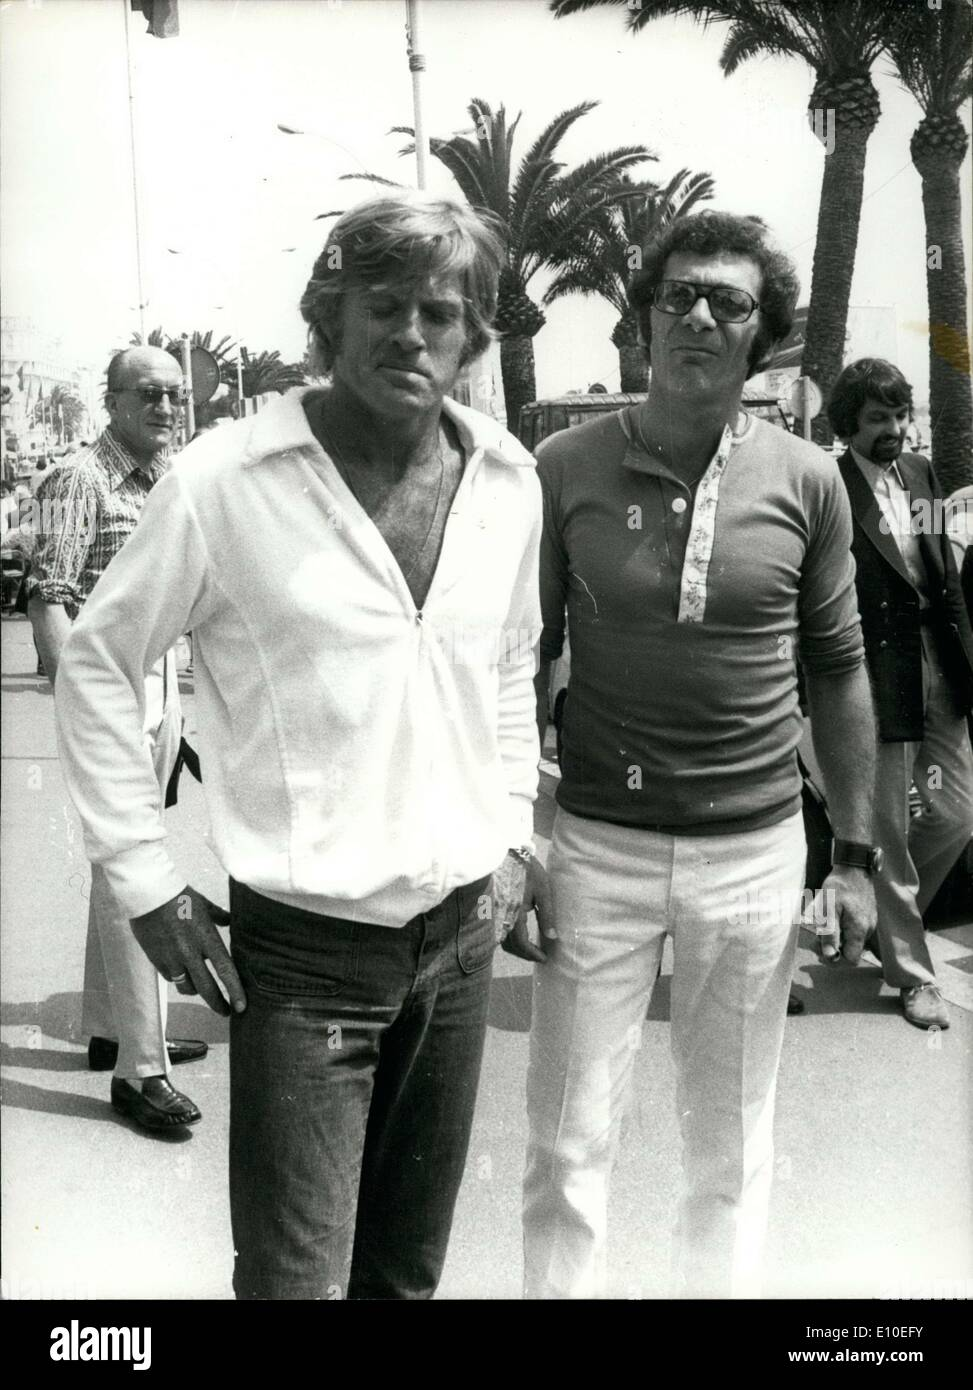 May 09, 1972 - Robert Redford and Sydney Pollack at Cannes Film Festival - Stock Image